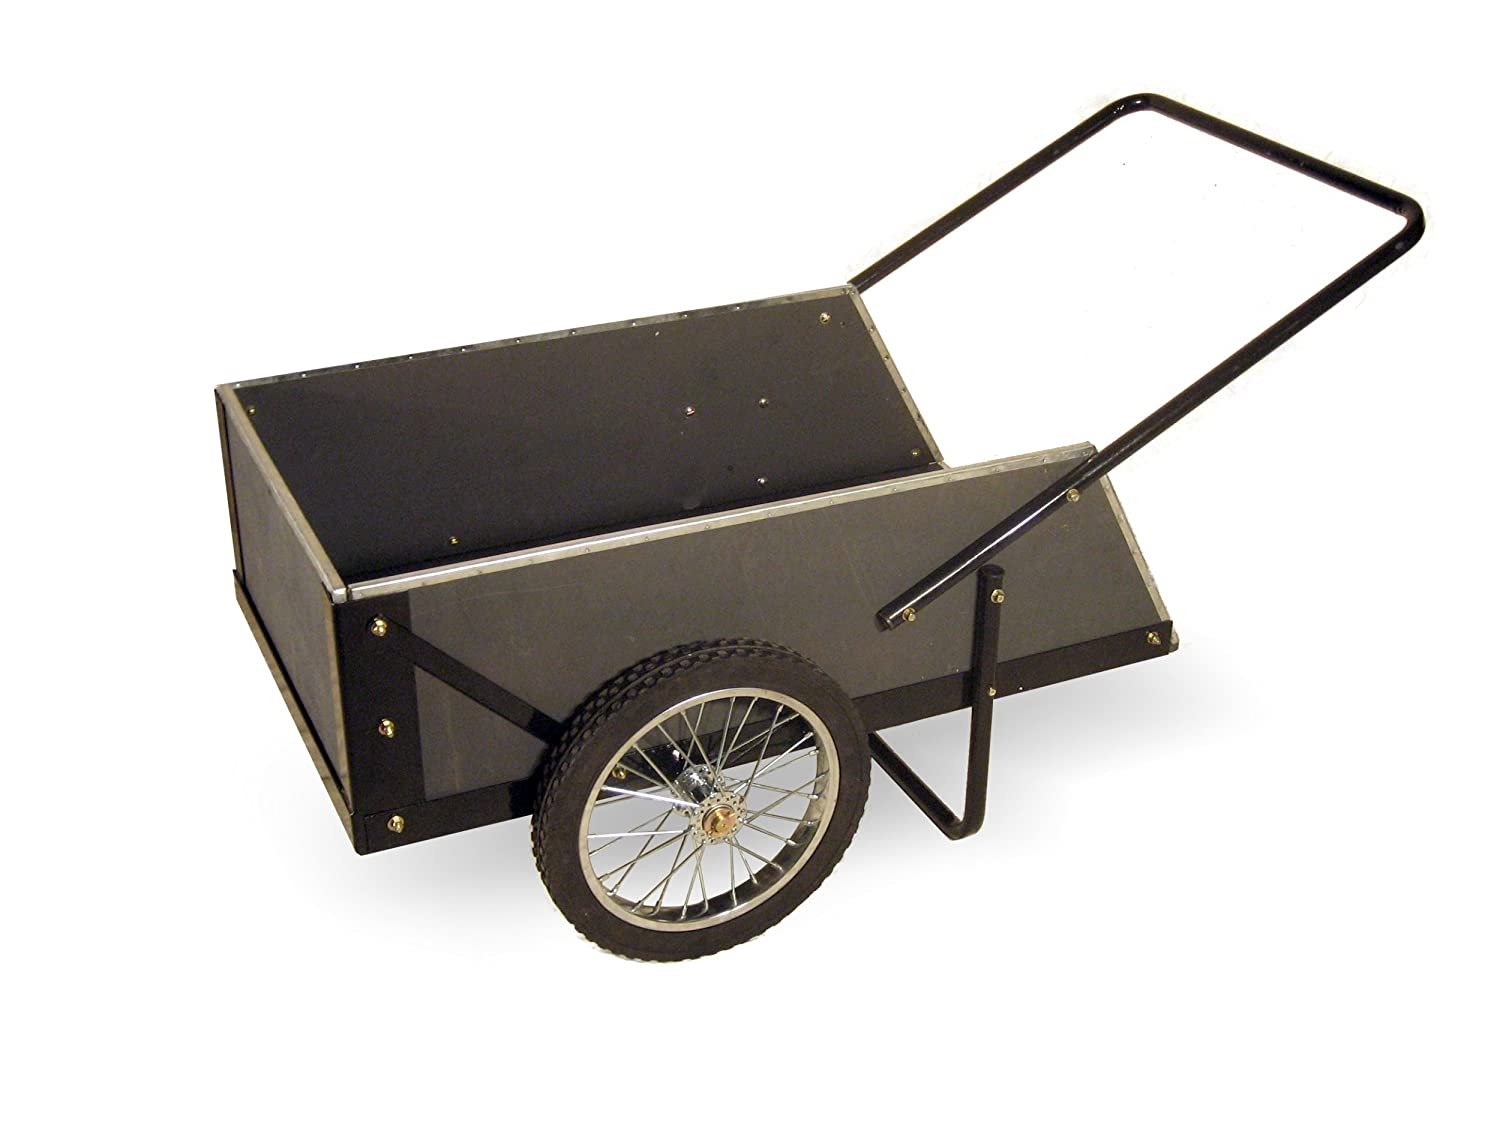 Superieur Amazon.com : Precision Products 7 Cubic Foot Capacity Wooden Cart WC07 : Yard  Carts : Garden U0026 Outdoor